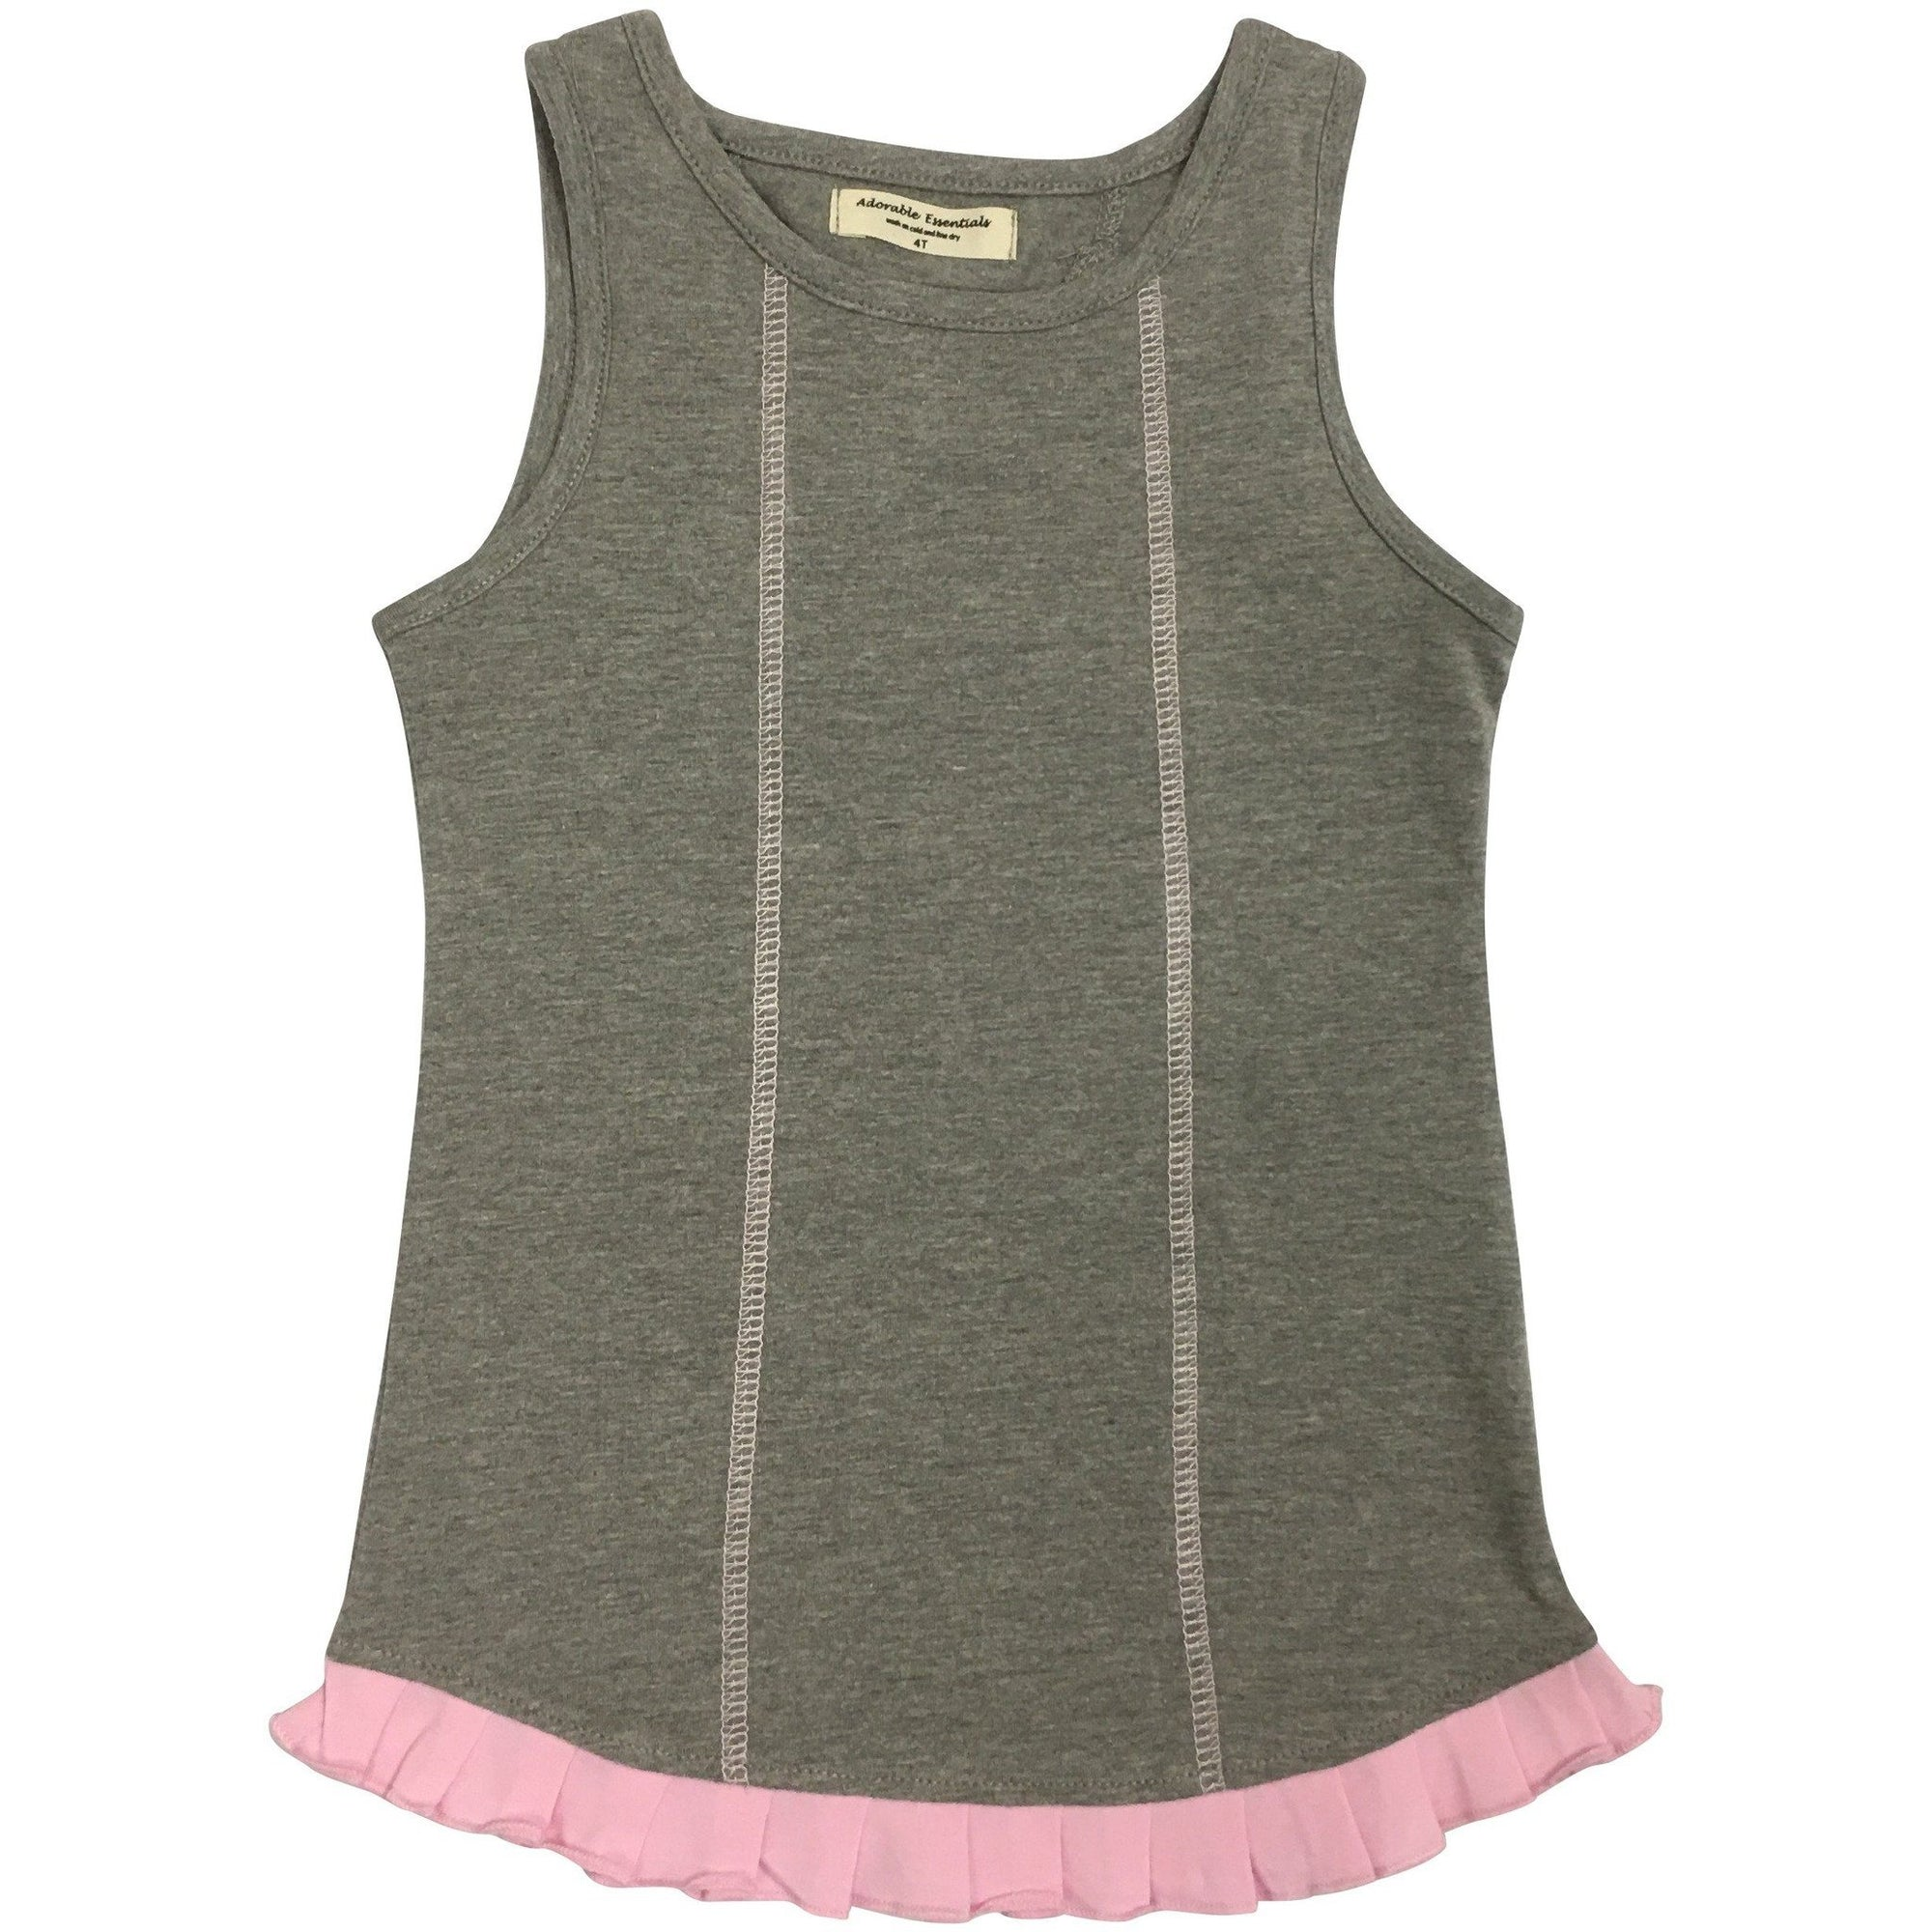 Sleeveless Tanks - Adorable Essentials, LLC